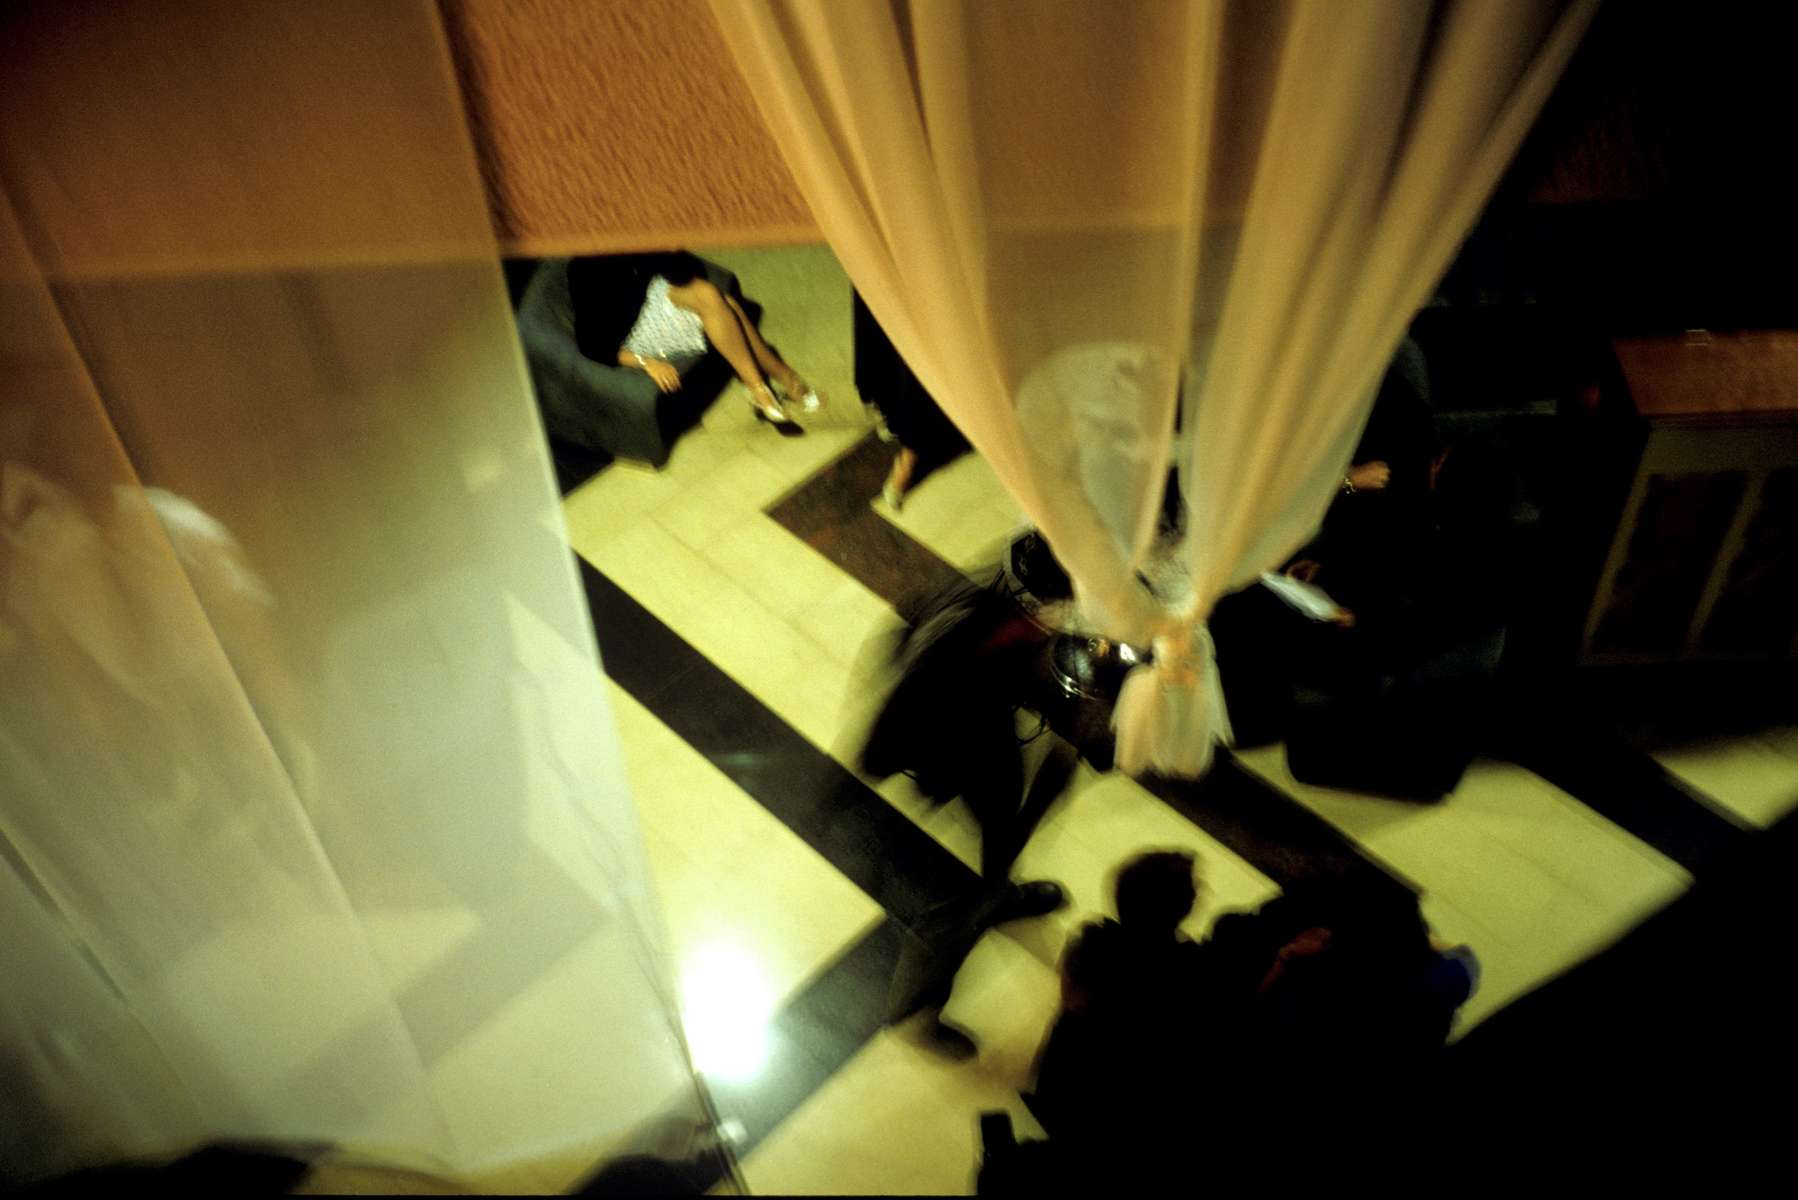 Backstage at the 2002 Miss Bosnia and Hercegovina contest, held at the Holiday Inn.